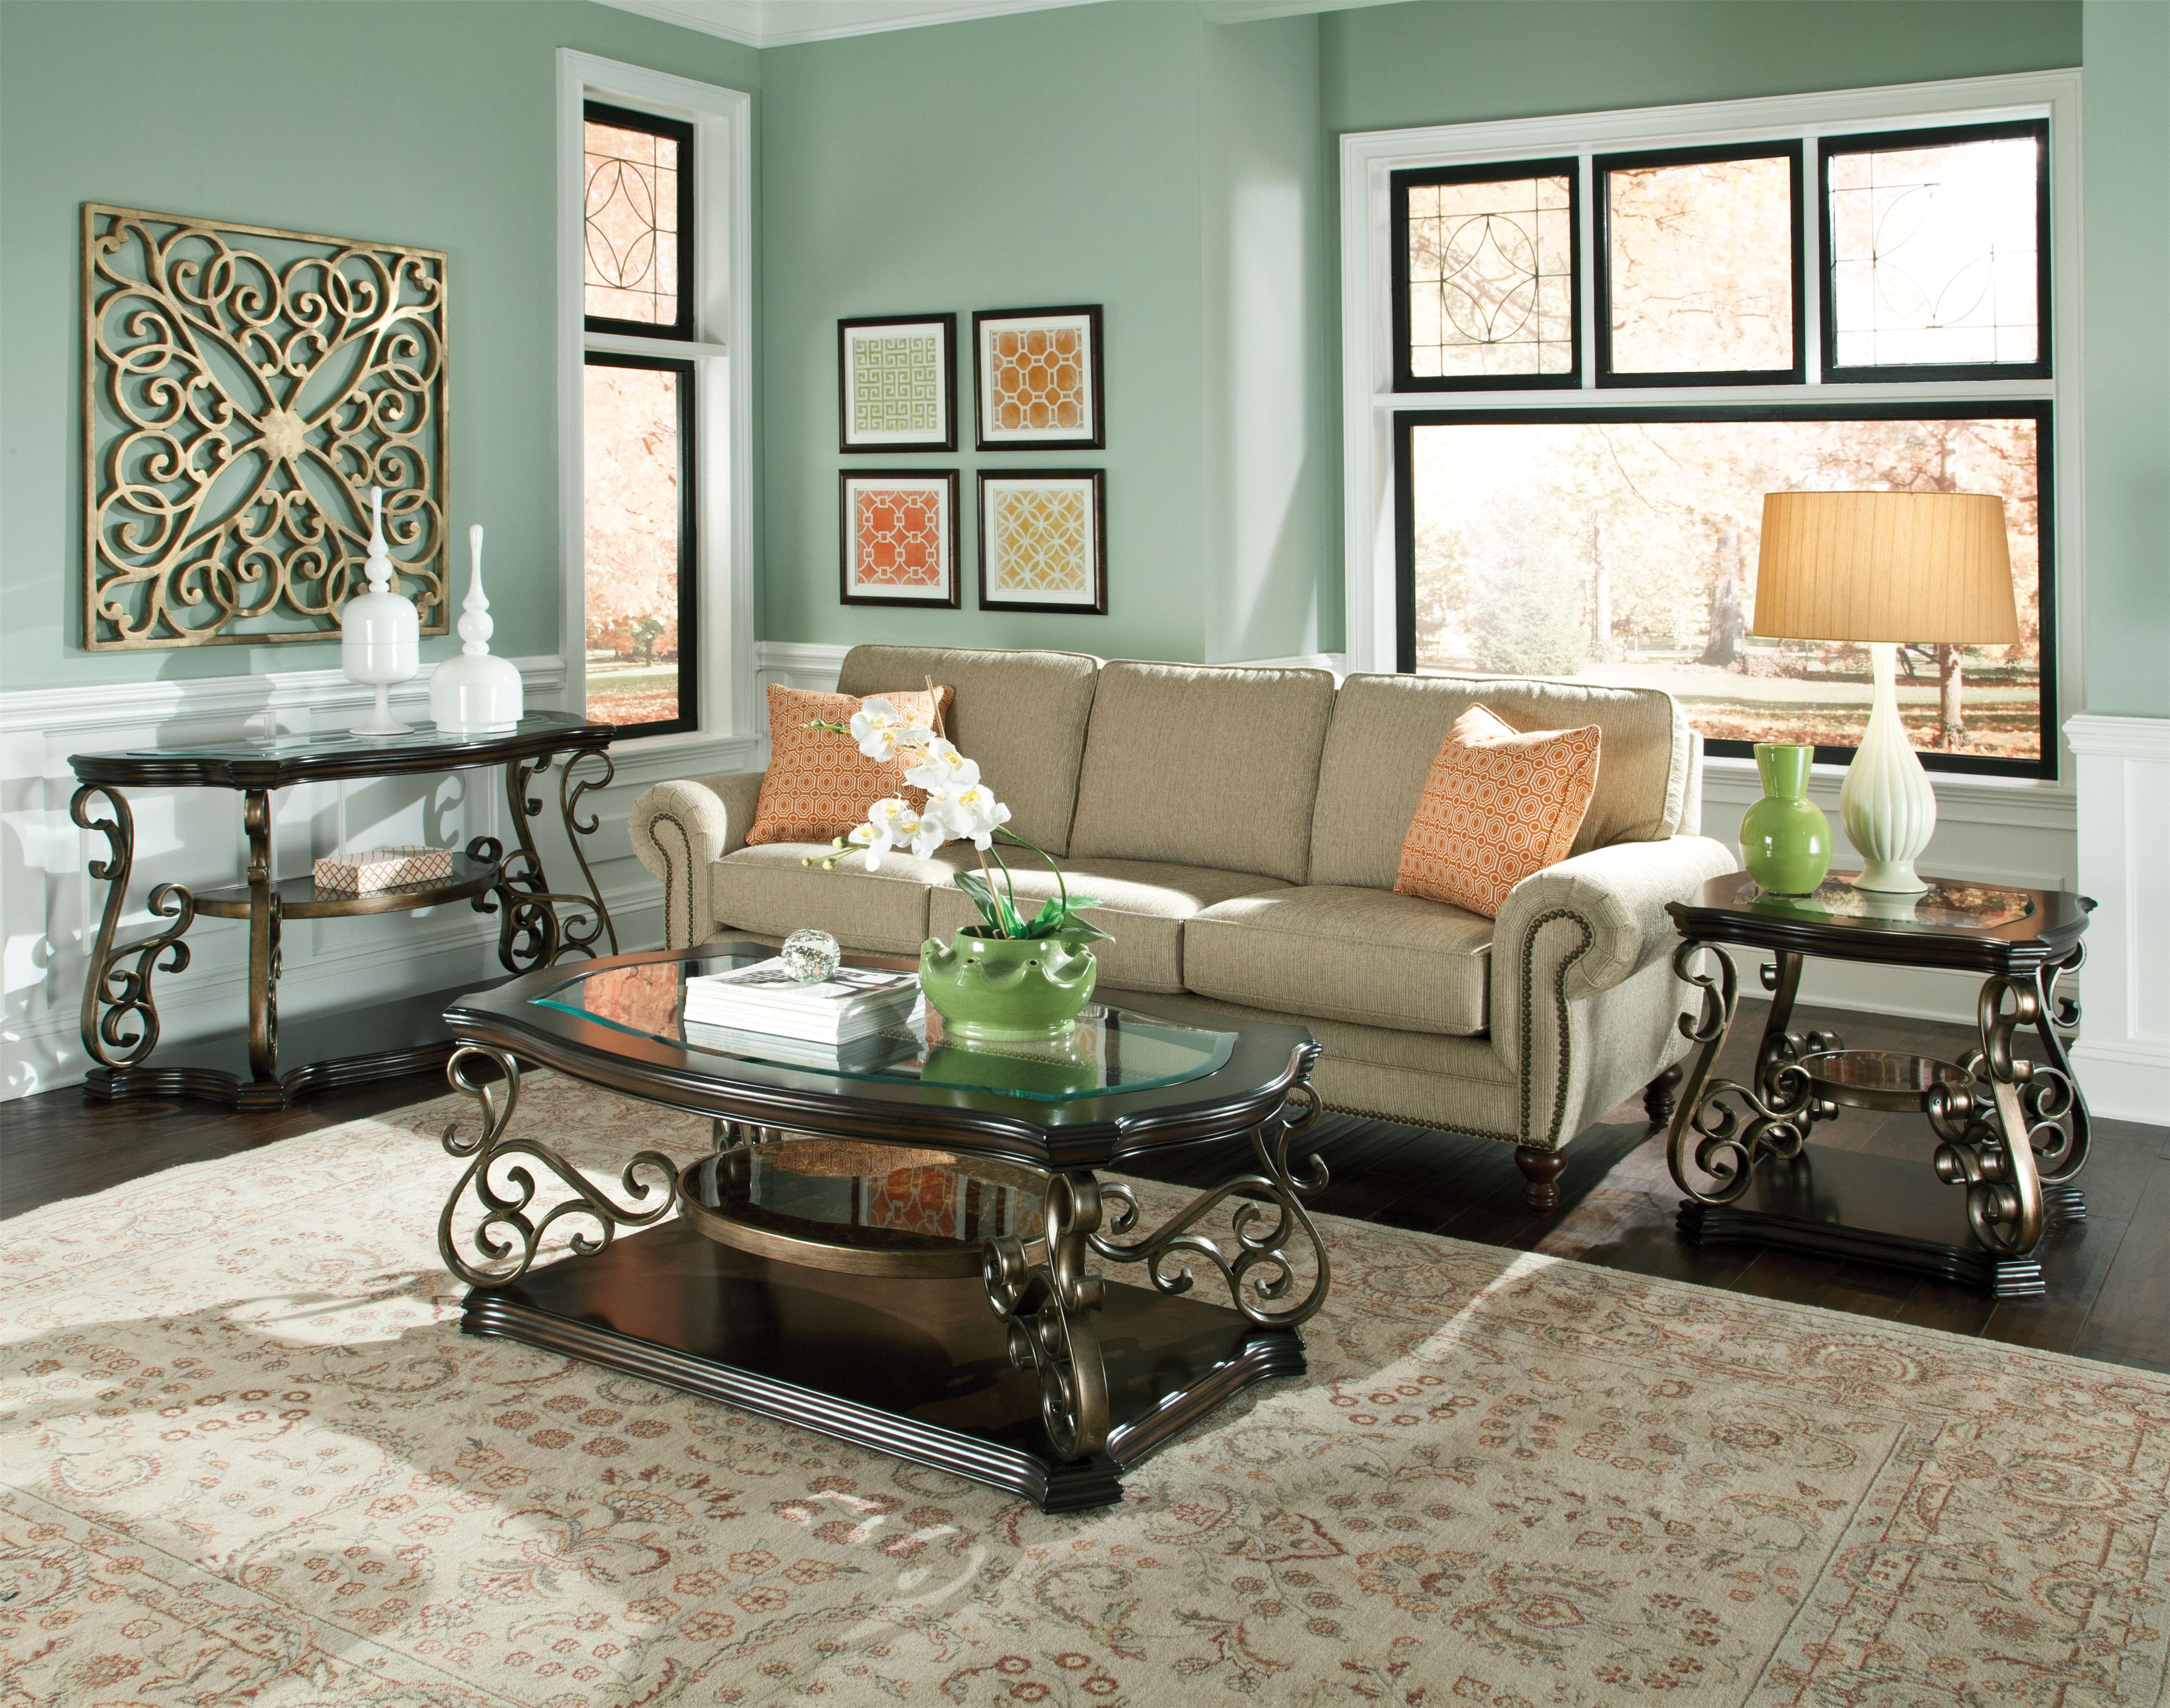 standard furniture seville 21937 glass top sofa table with 2 shelves great american home store. Black Bedroom Furniture Sets. Home Design Ideas